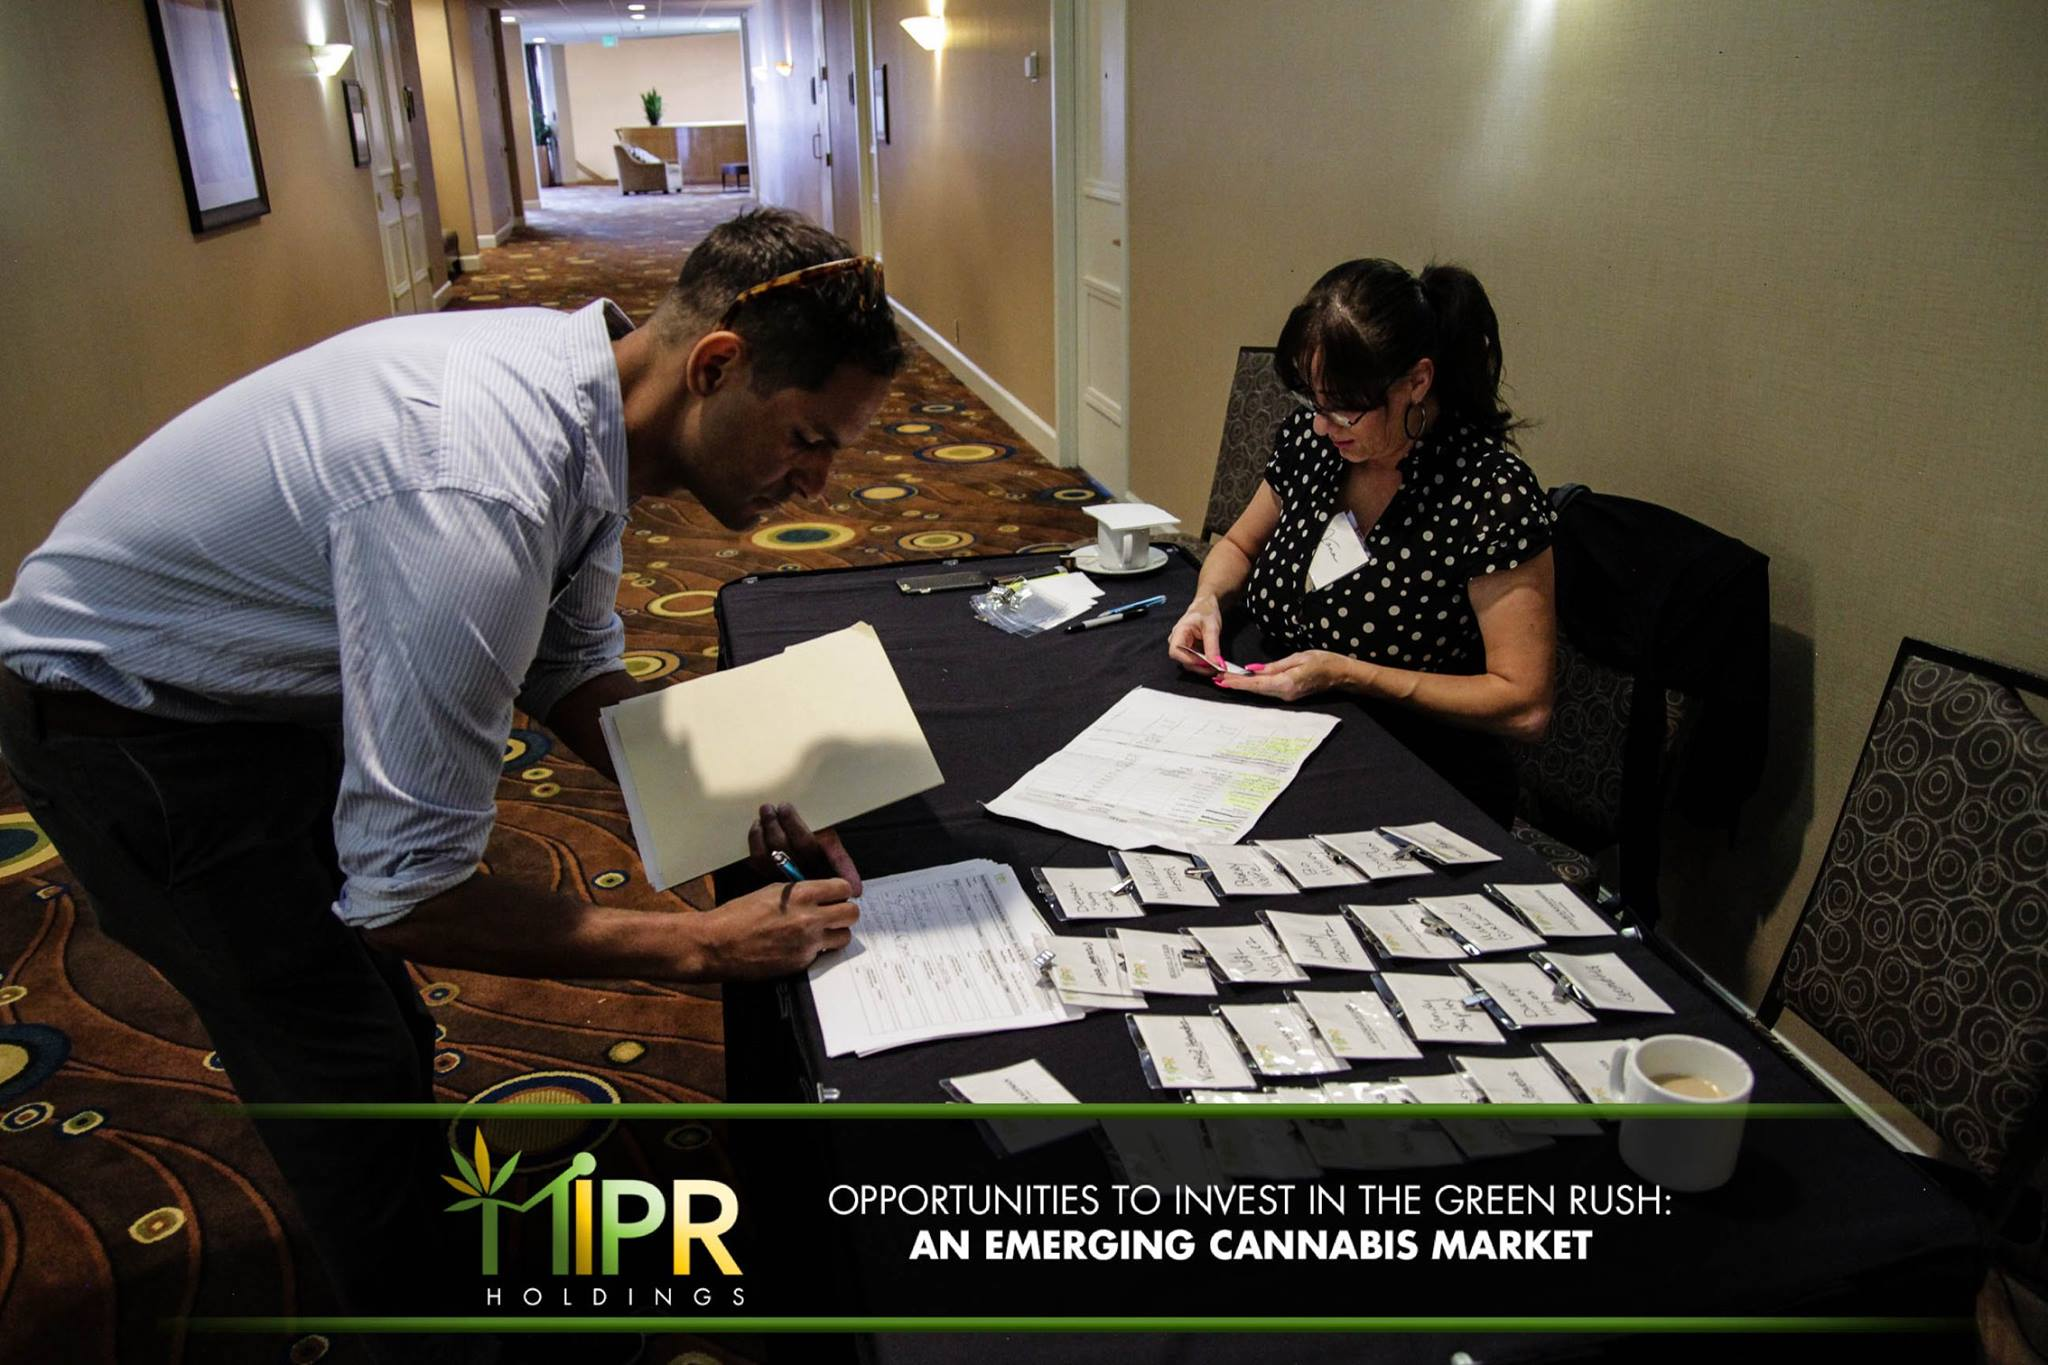 Let s look at it from an investment prospective if a company had - Mipr Conference Sign Up